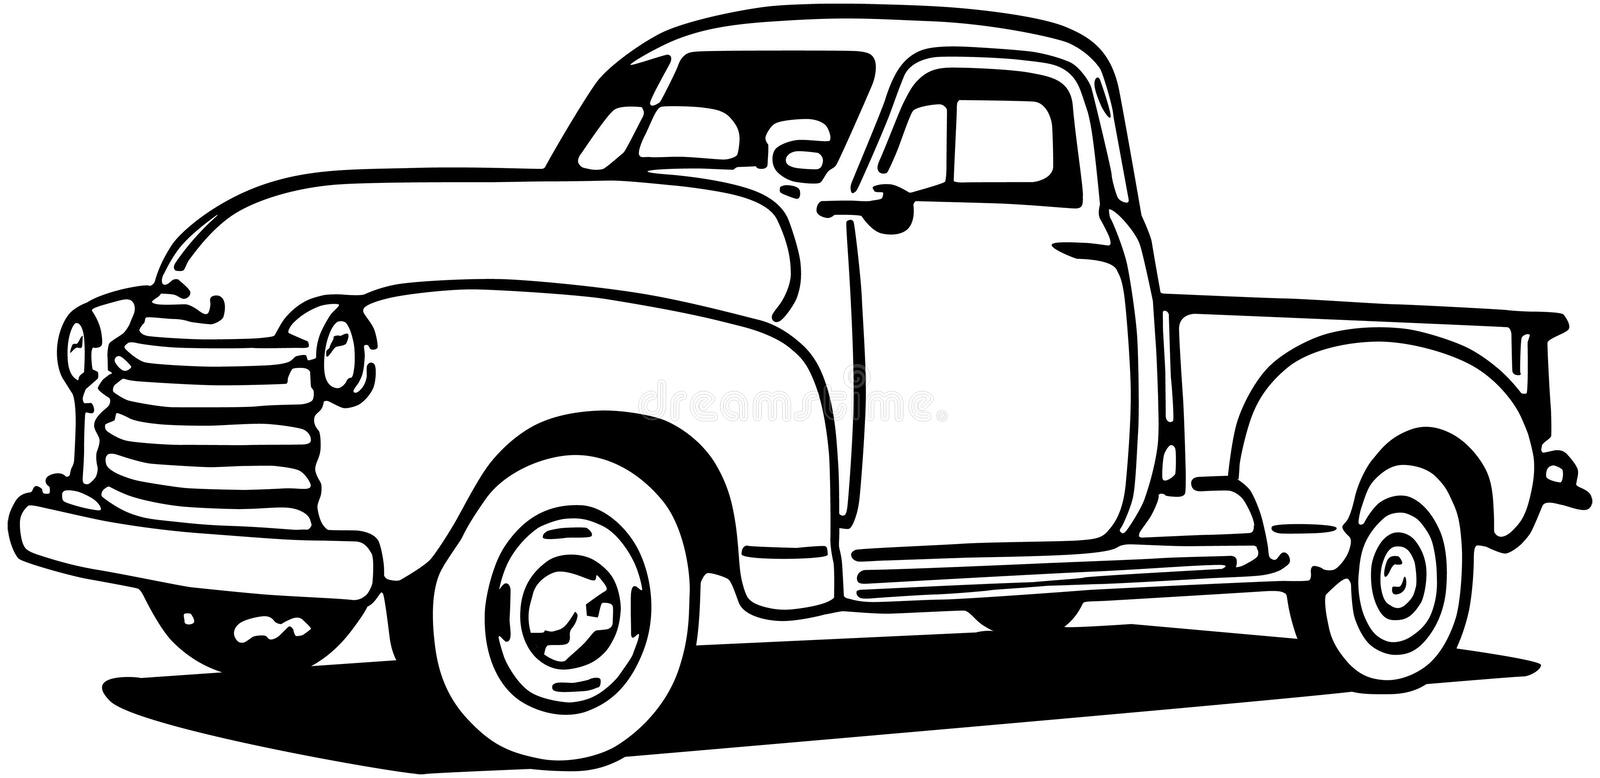 Chevy Pickup Truck illustration stock